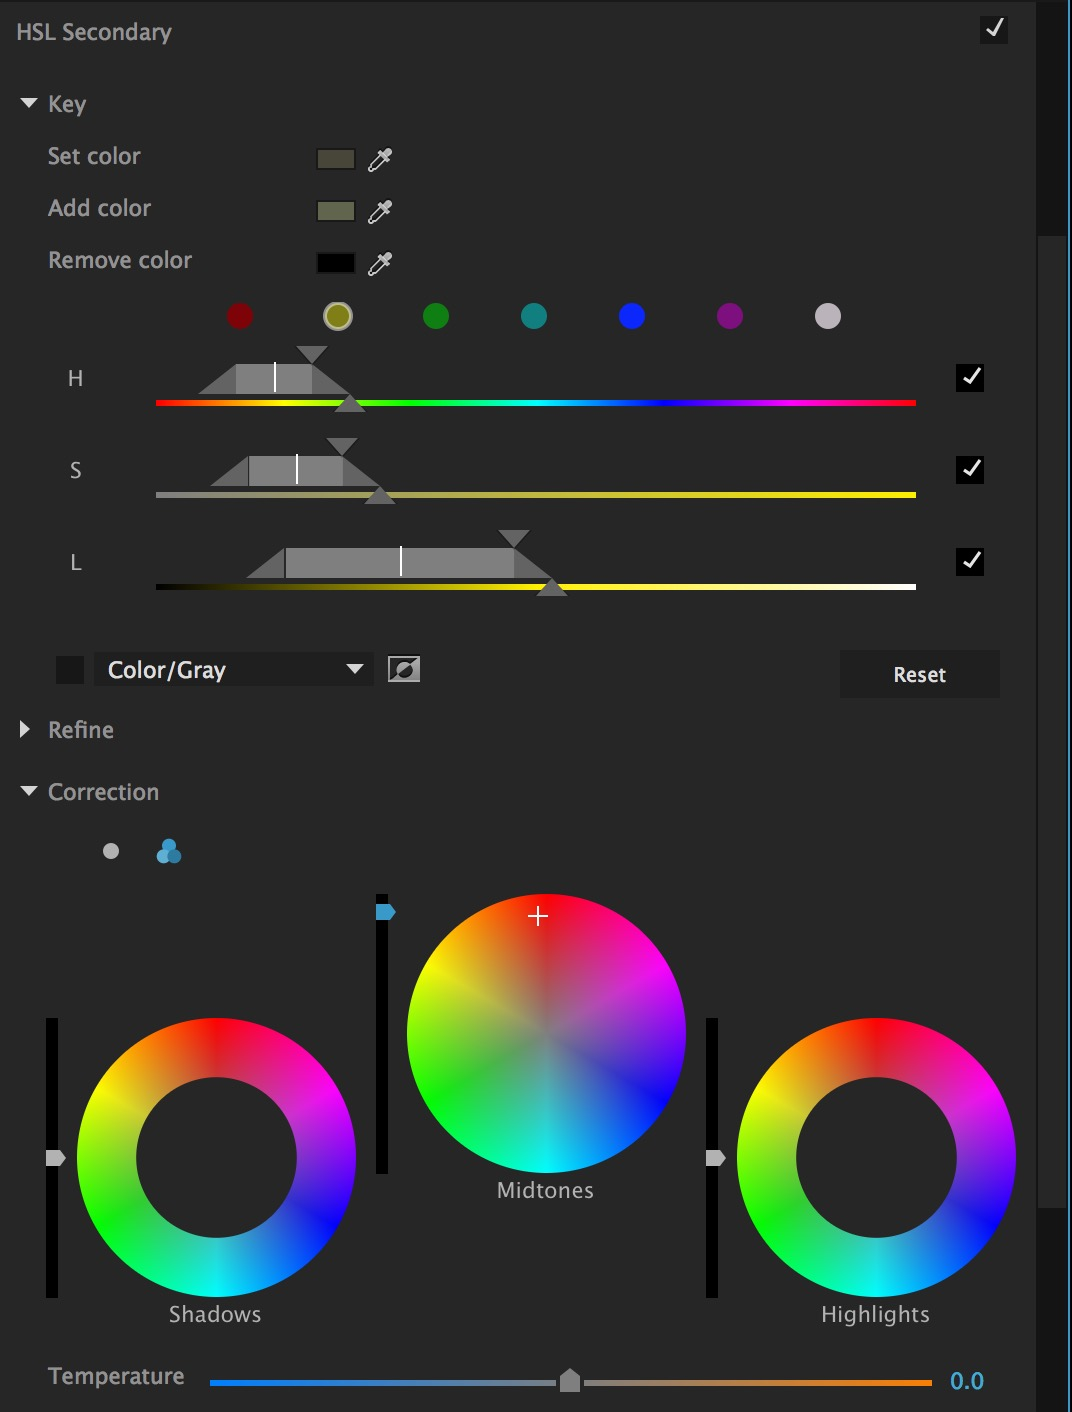 Secondary color correction is added with a number of familiar controls.